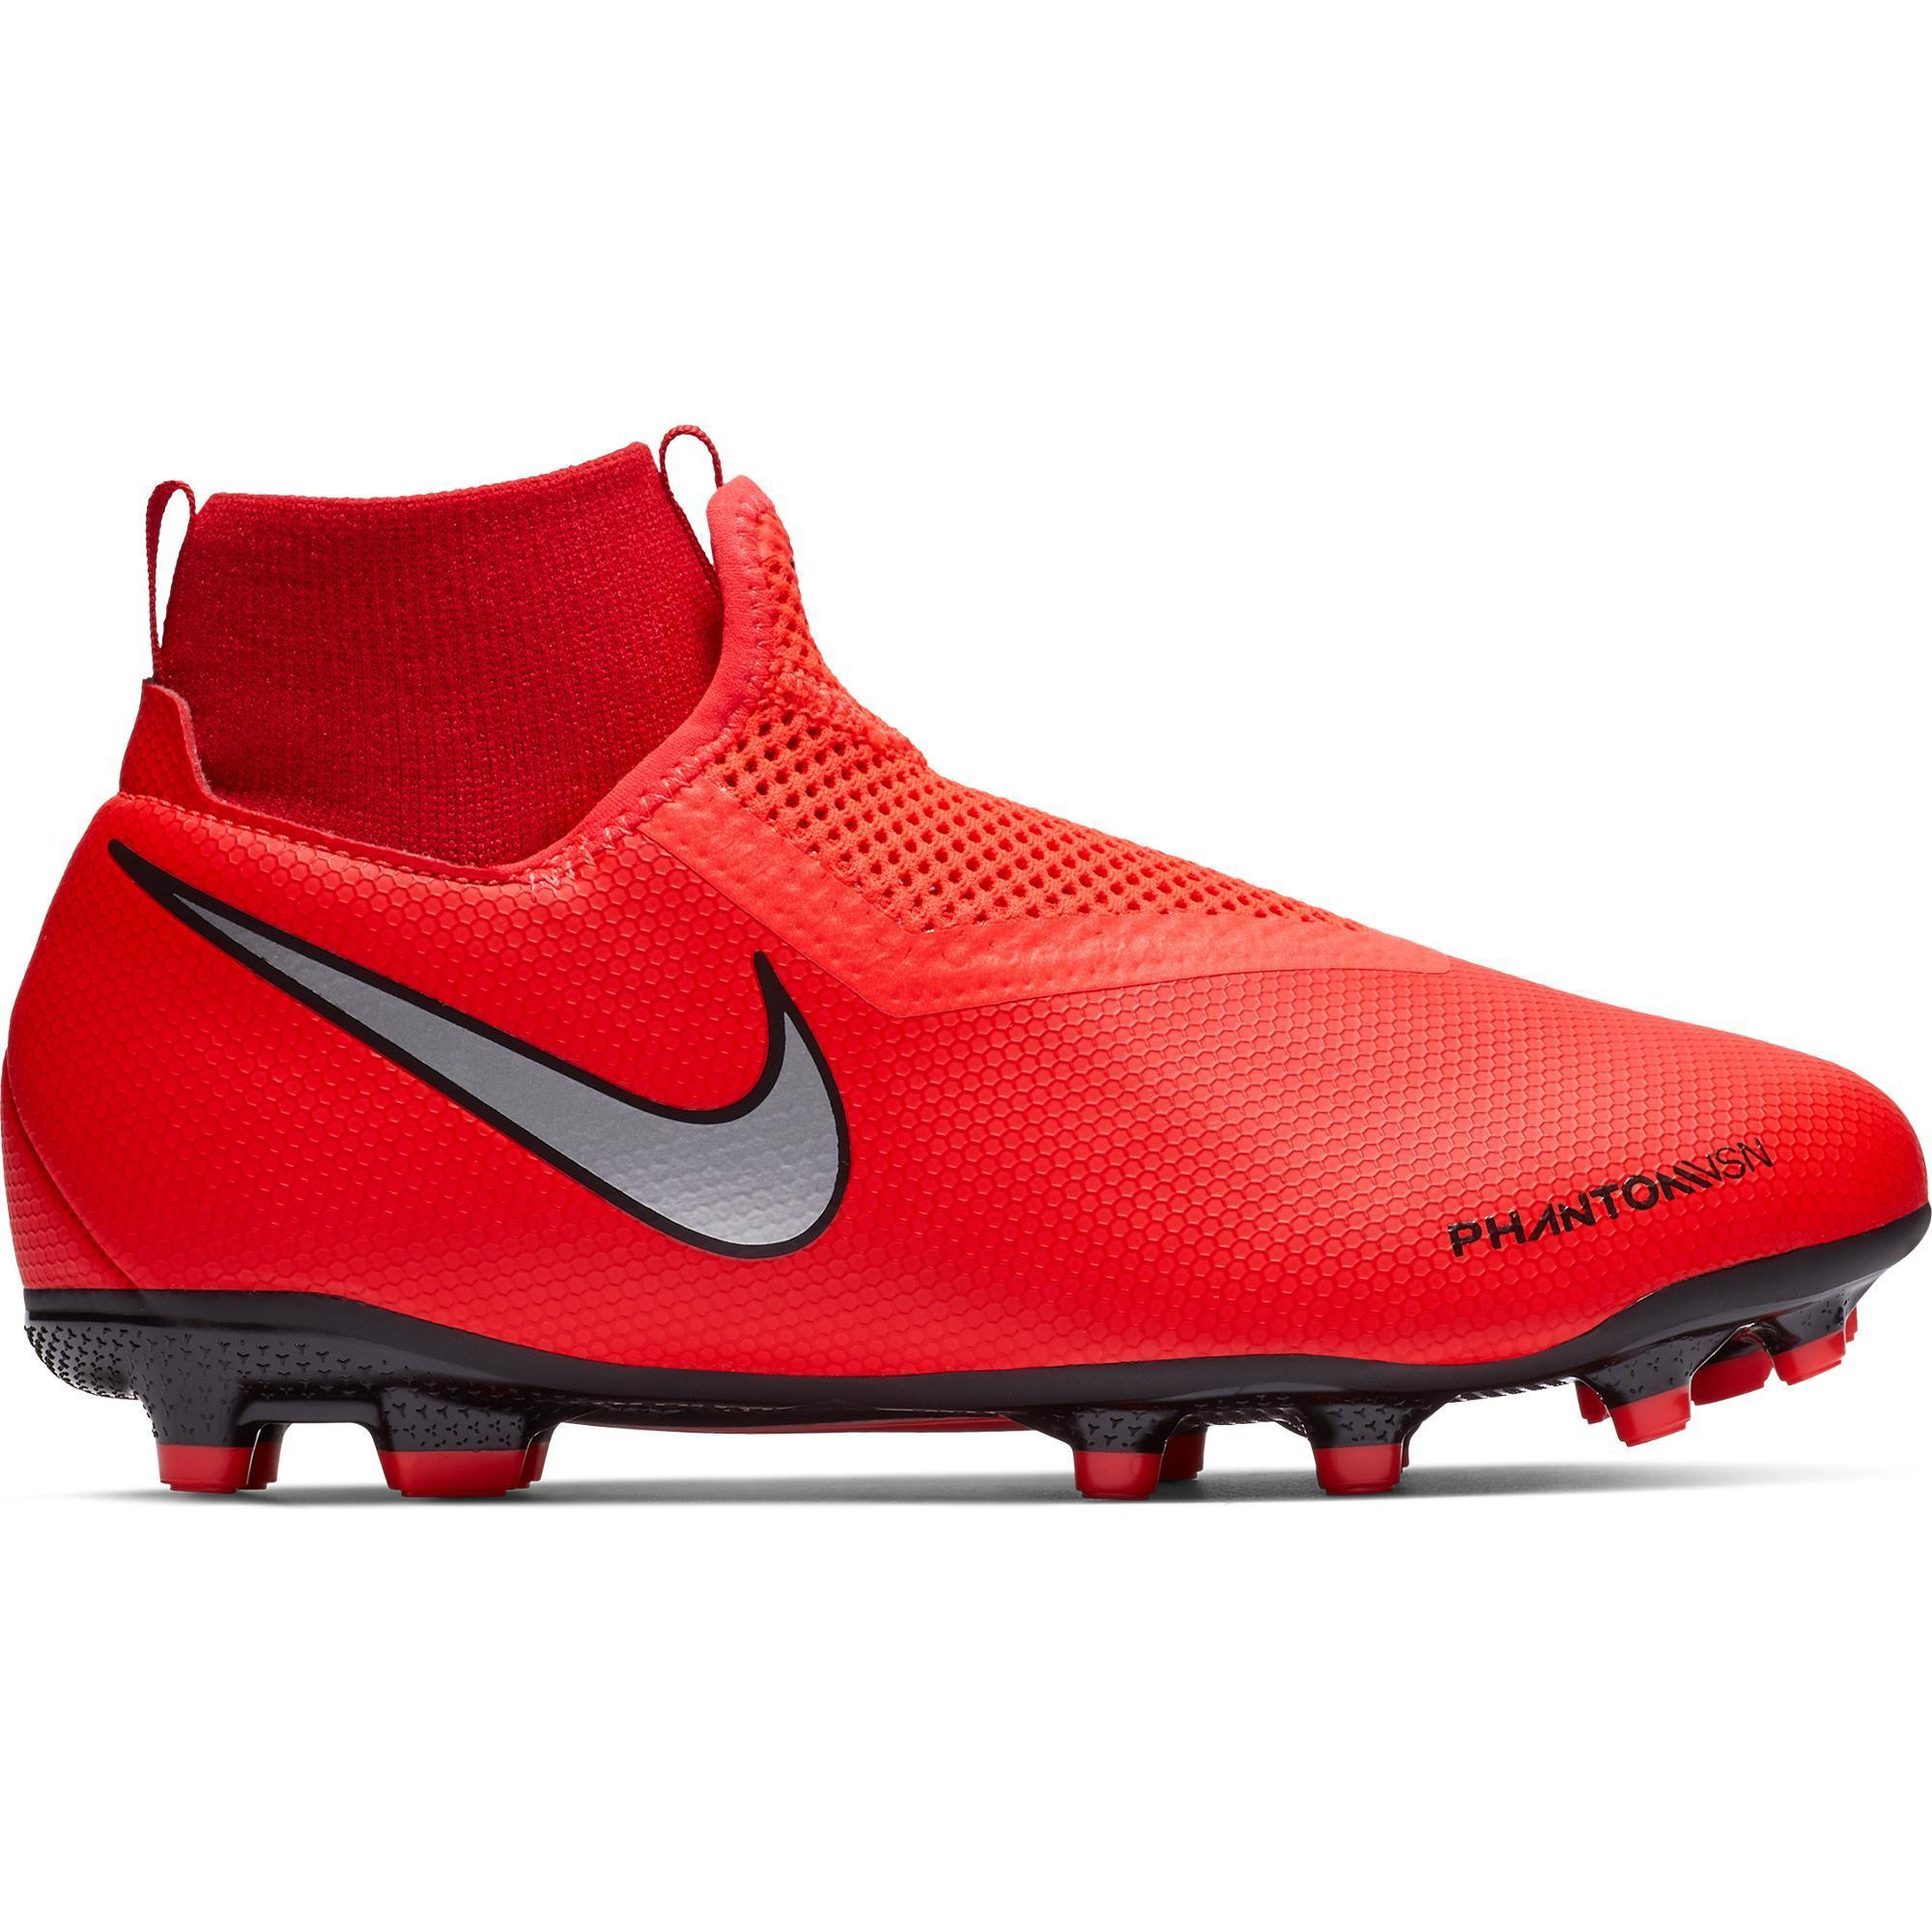 Nike Voetbalschoenen kind Phantom Vision Academy Dynamic Fit MG rood